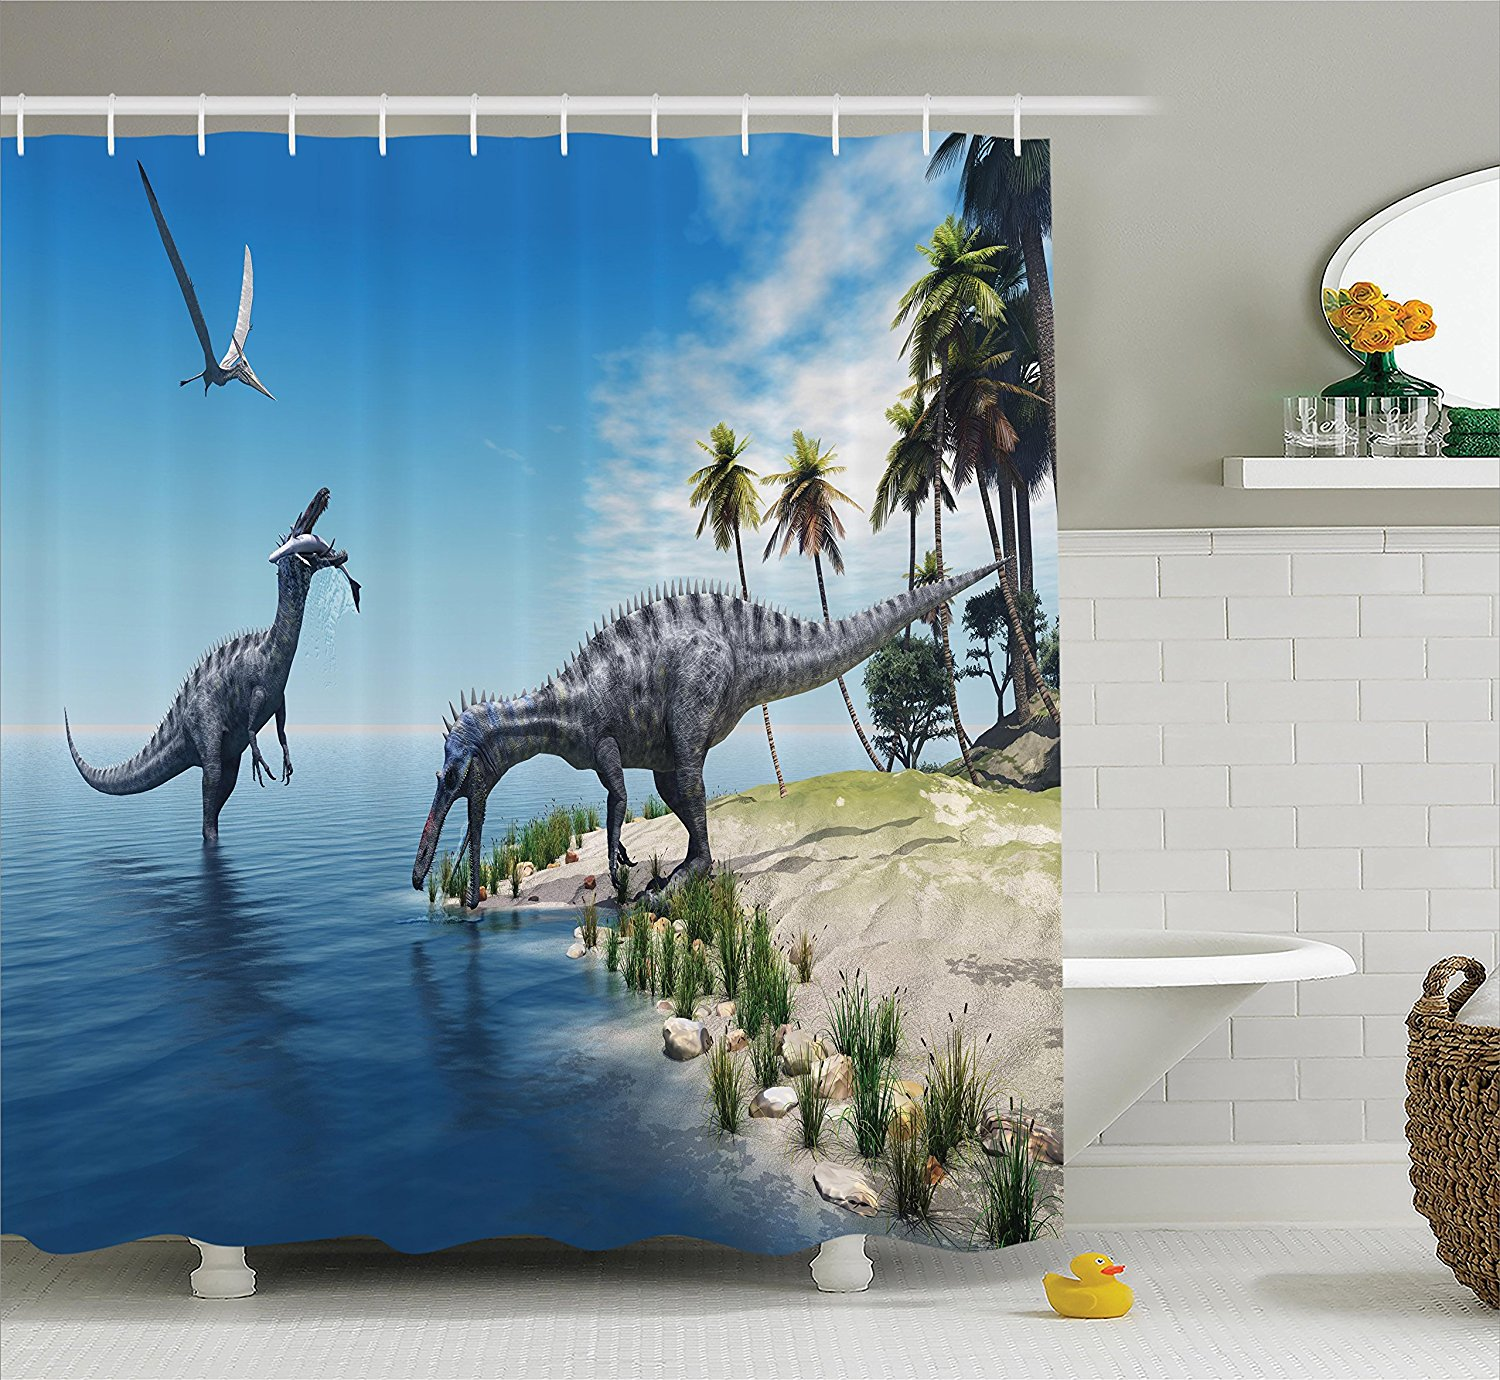 Cheap Dinosaur Curtain Fabric Find Dinosaur Curtain Fabric